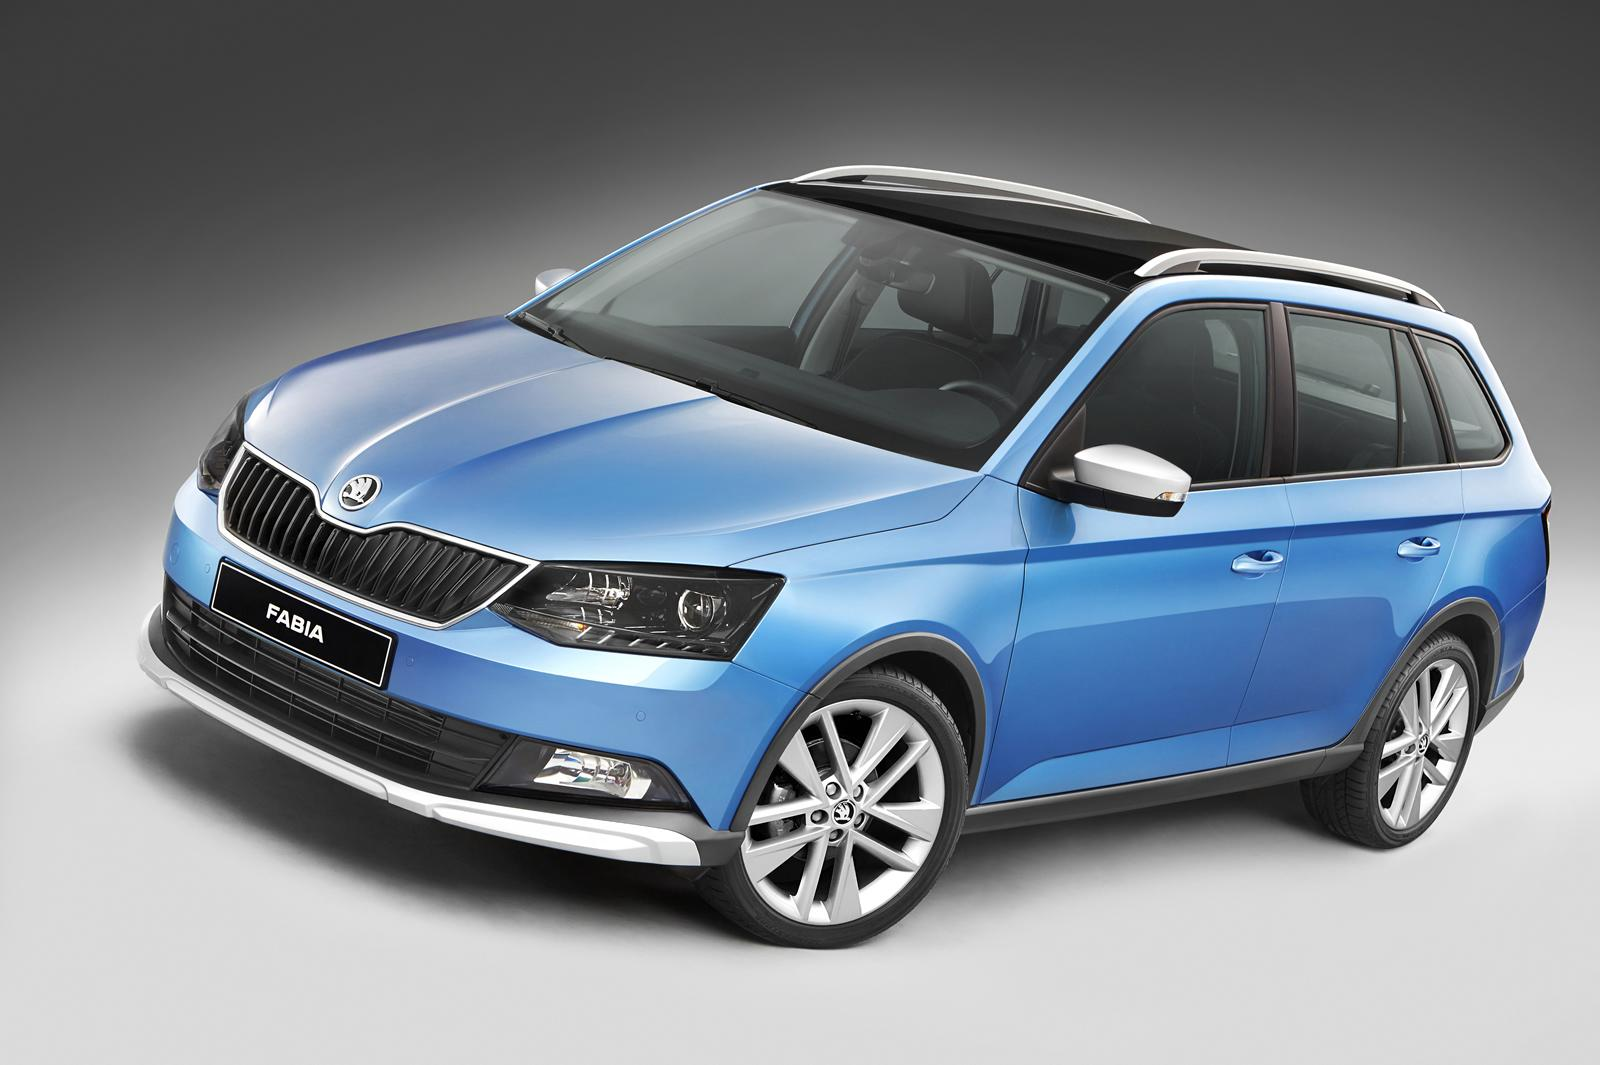 new 2015 skoda fabia receives five star rating from euro ncap autoevolution. Black Bedroom Furniture Sets. Home Design Ideas